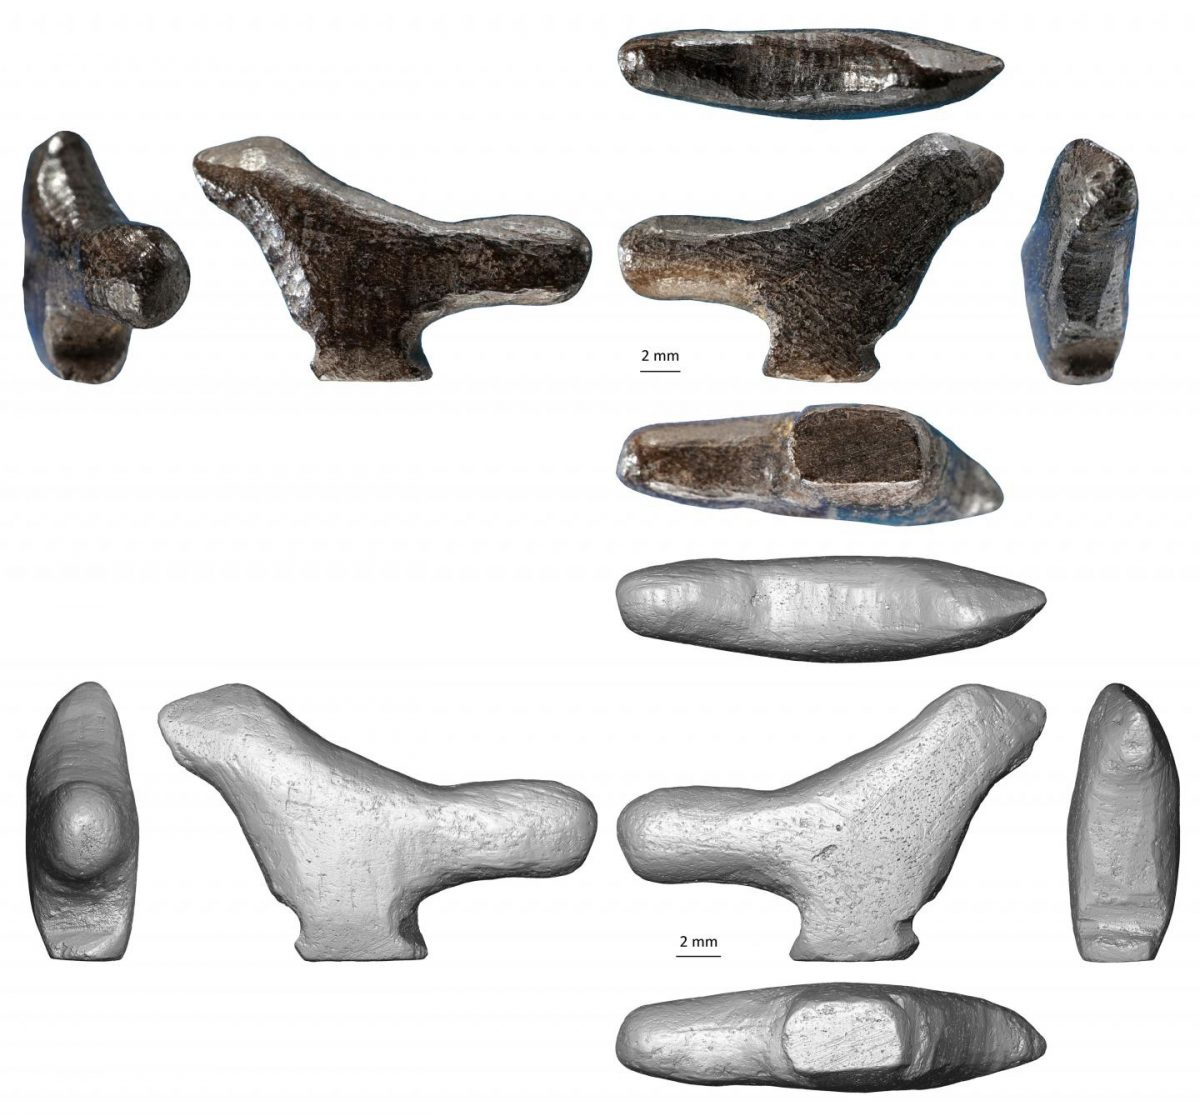 Photo (top) and 3D reconstruction using microtomography (bottom) of the miniature bird sculpture. Its production combined four different techniques (abrasion, gouging, scraping and incision), which left 68 microfacets on the surface of the object. Credit: © Francesco d'Errico and Luc Doyon